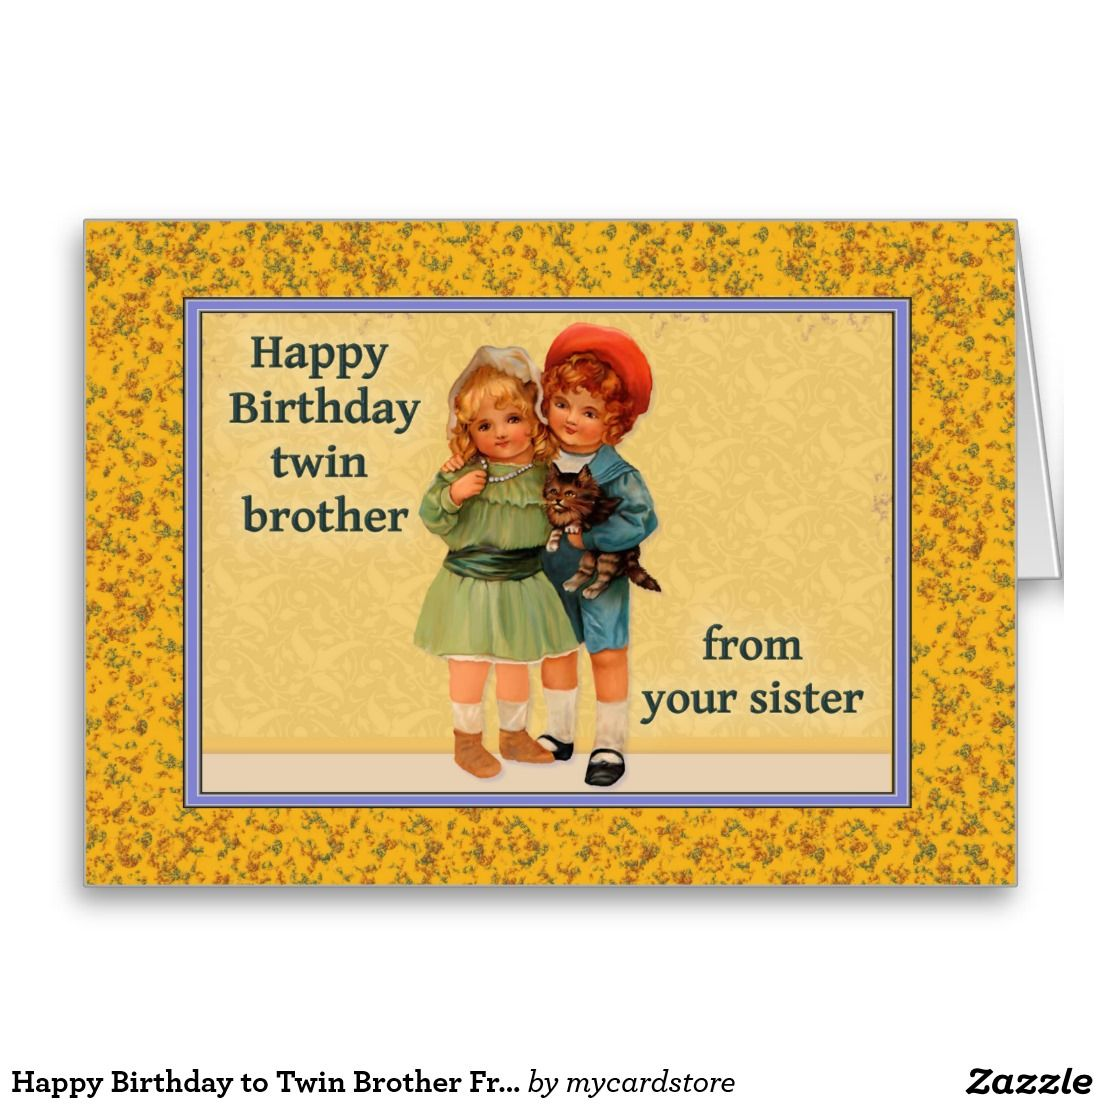 Happy Birthday To Twin Brother From Sister